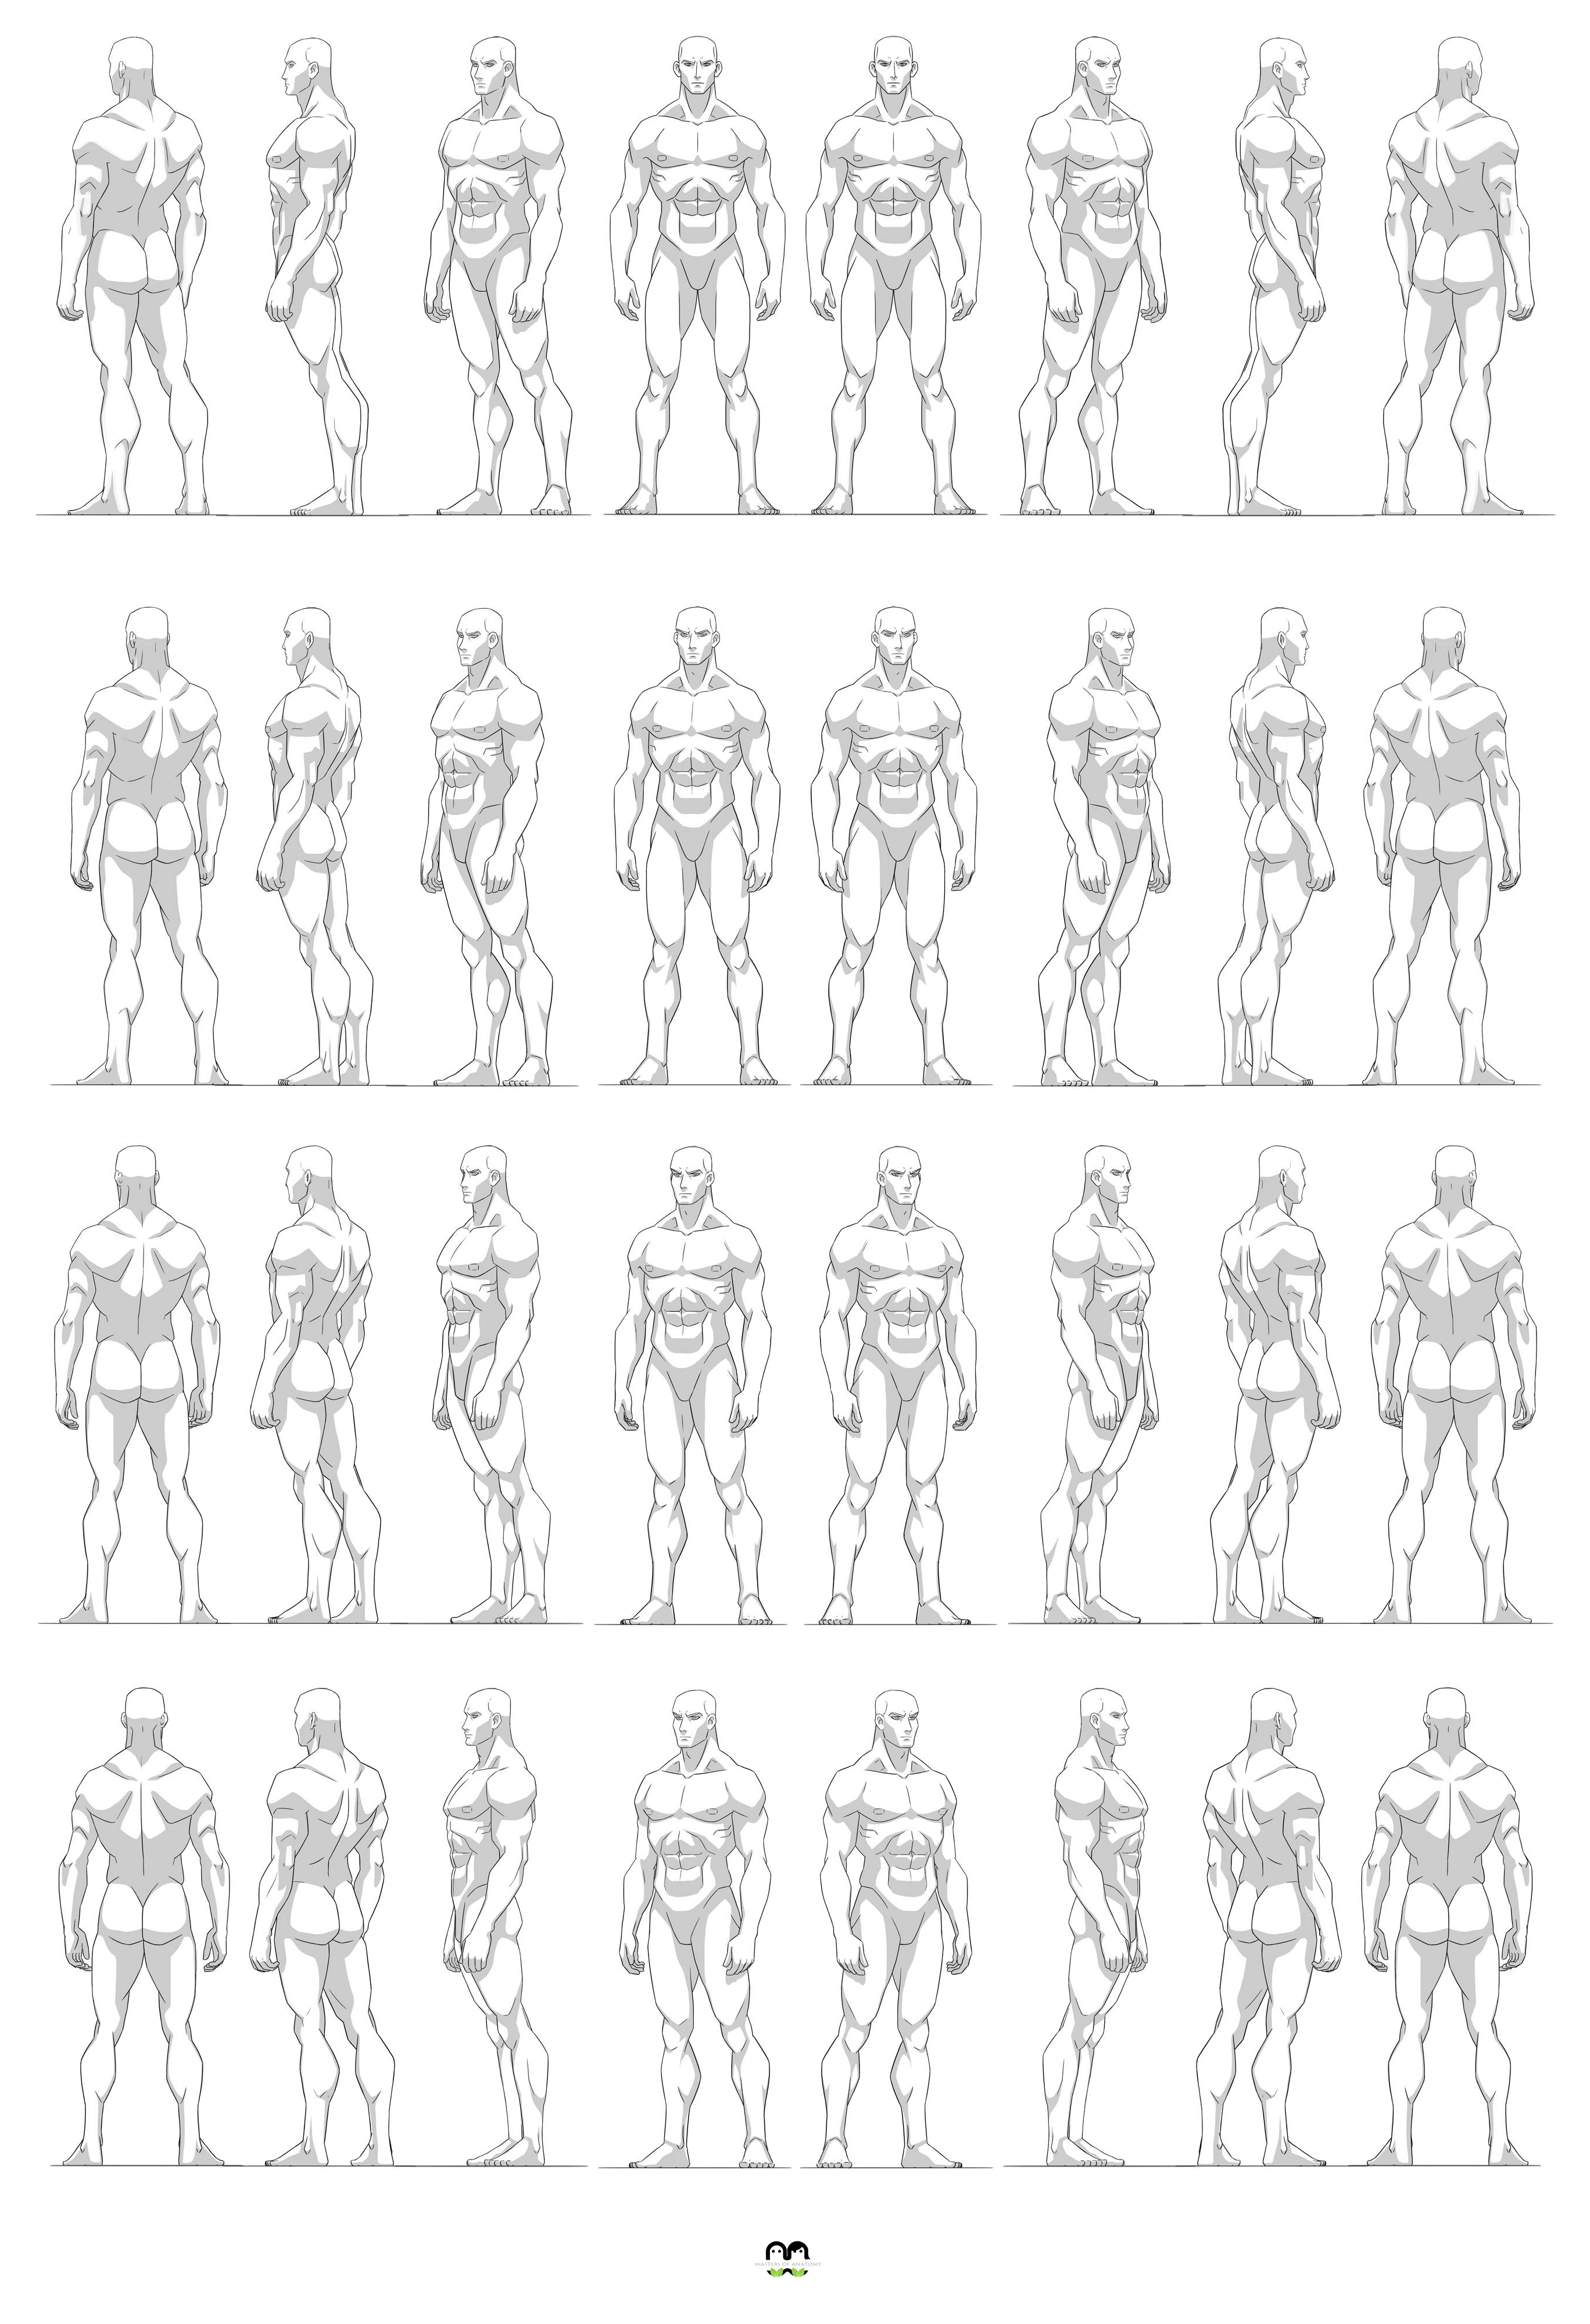 Pin By Kate Lay On Human Anatomy In